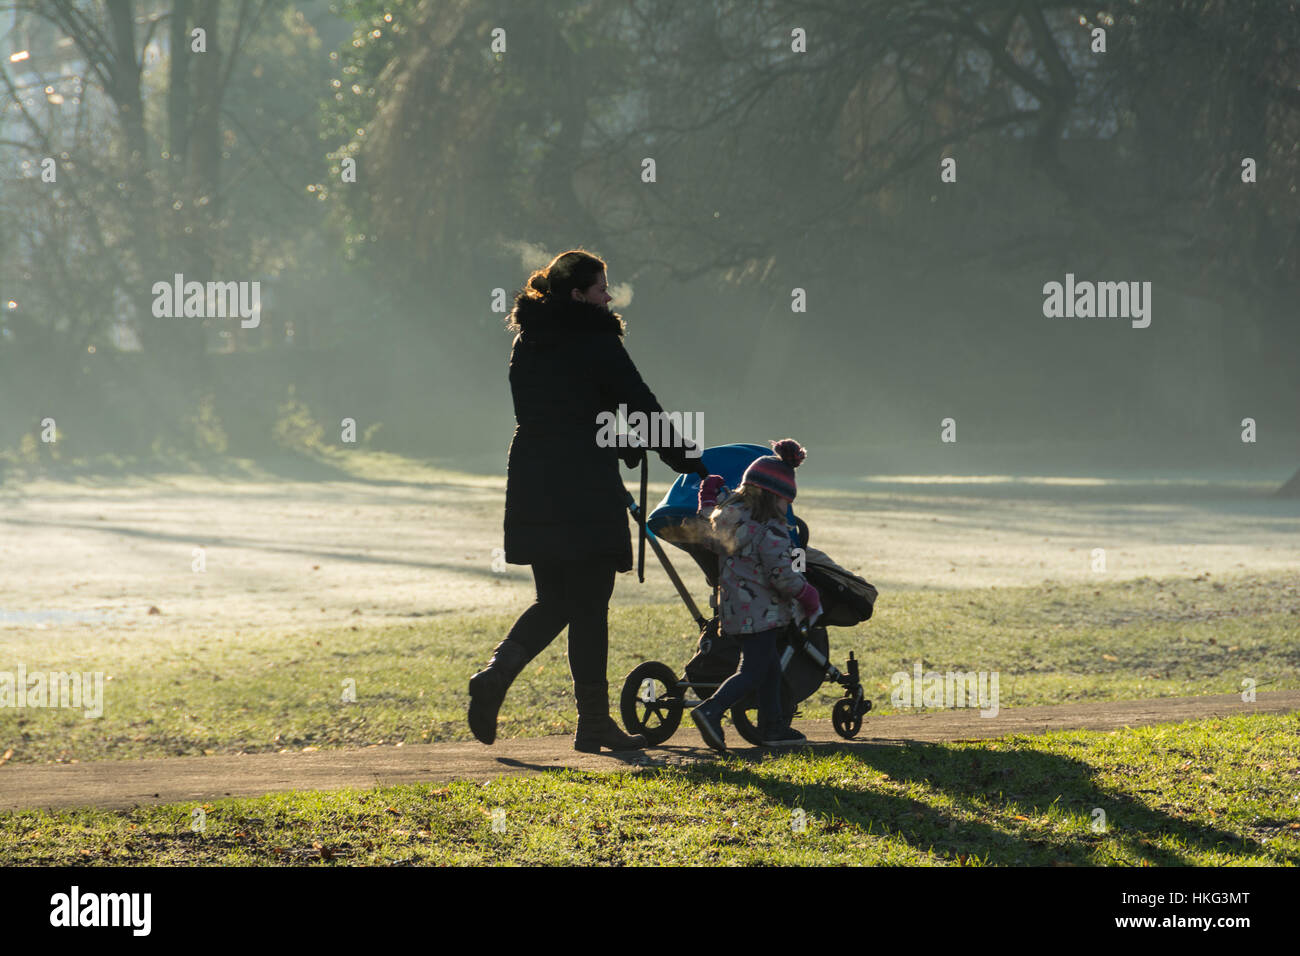 A Mum walking her children to nursery school on a frosty morning. - Stock Image